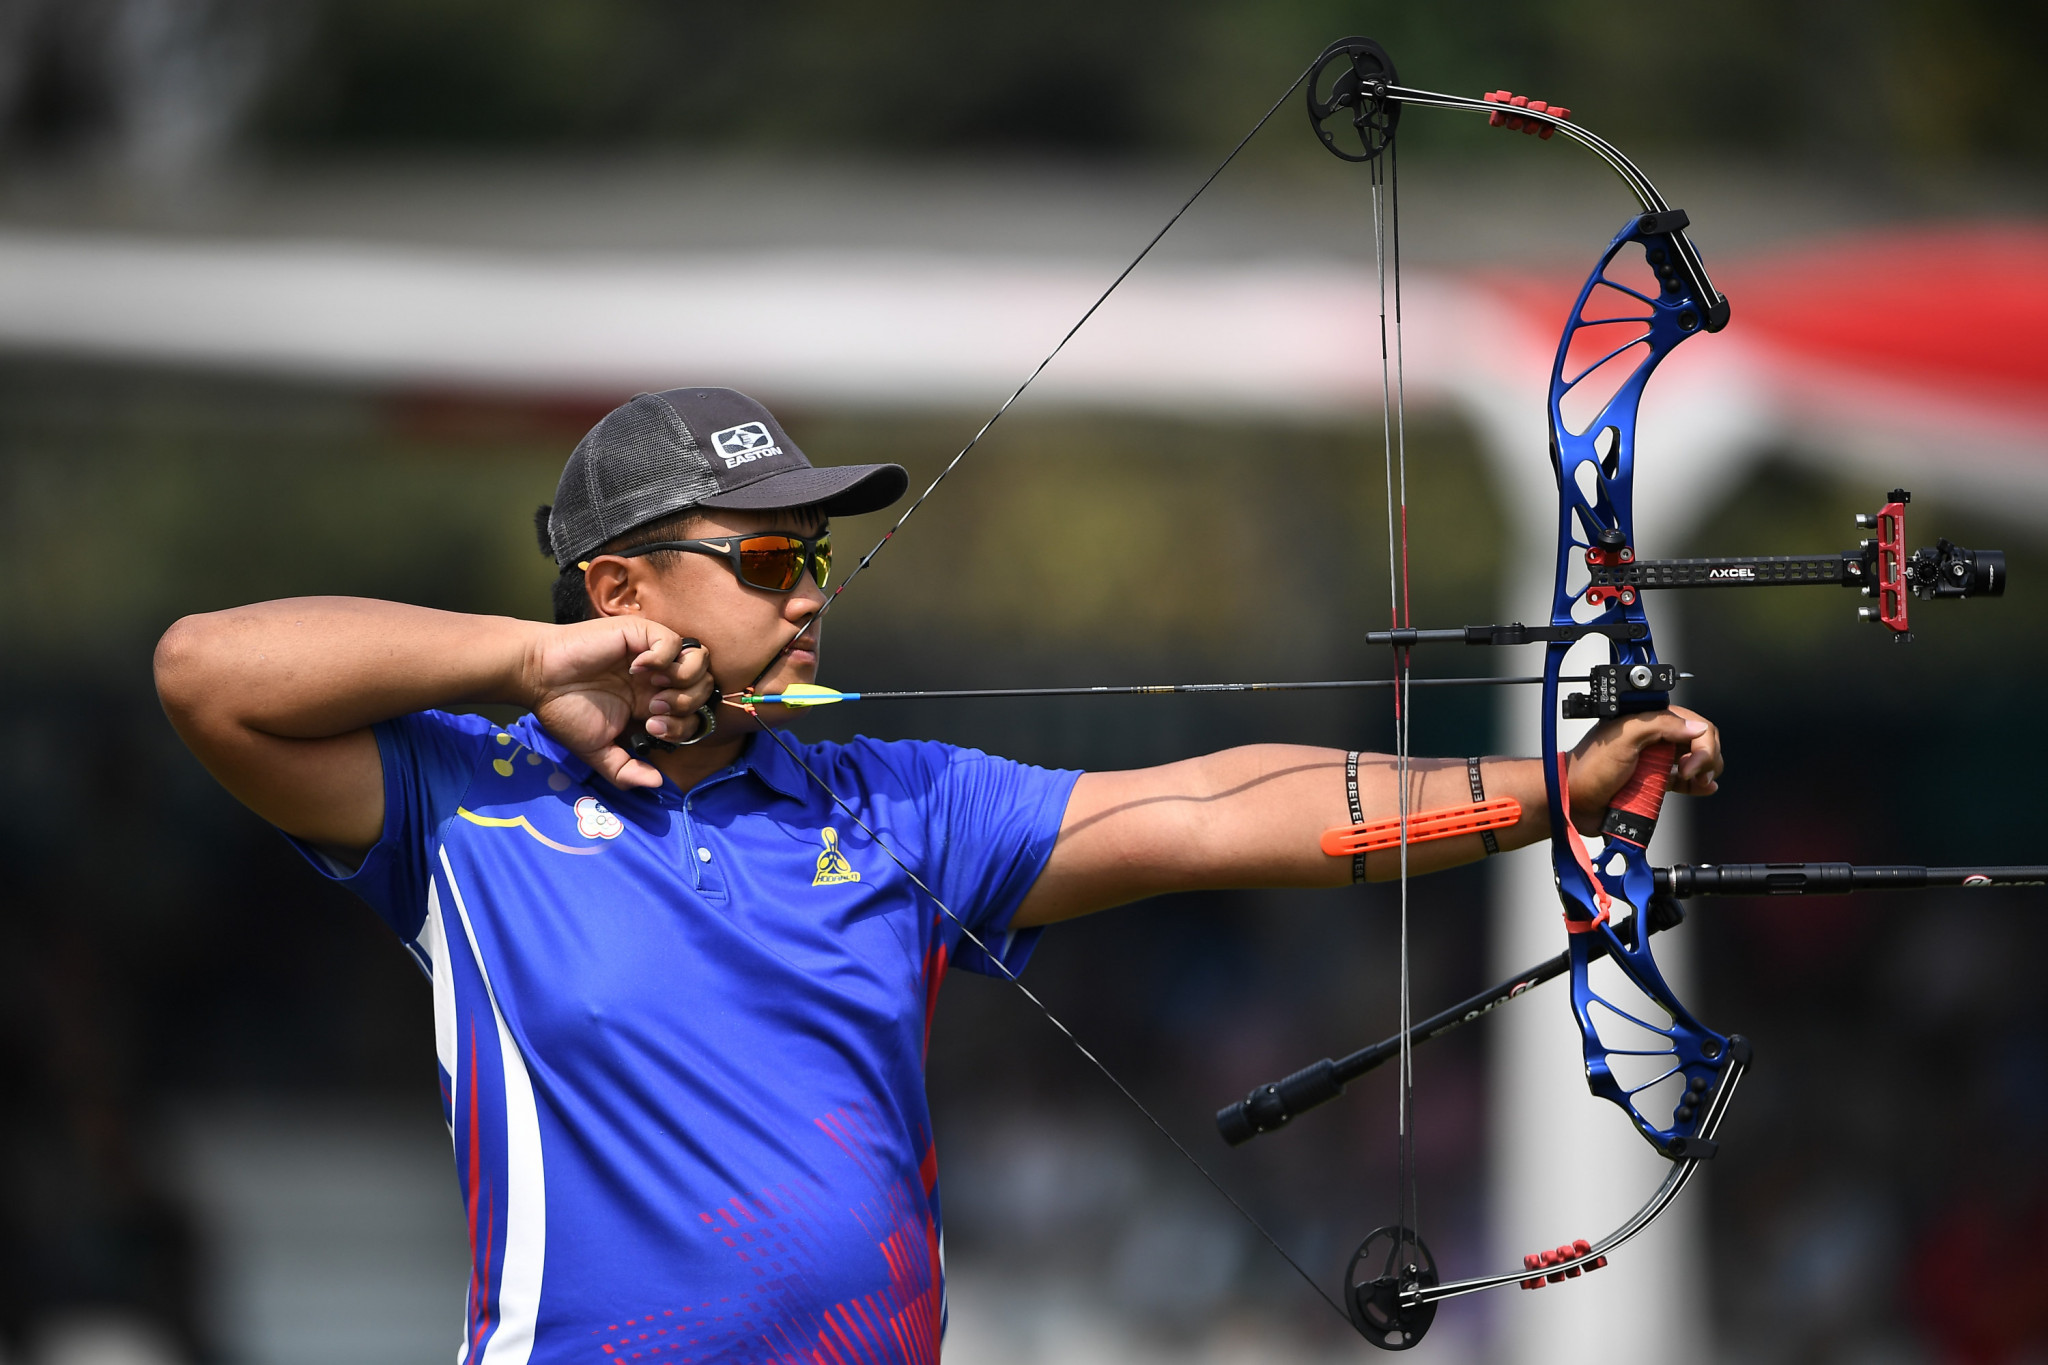 Chinese Taipei won two archery gold medals, in the men's team recurve and mixed team compound ©Getty Images